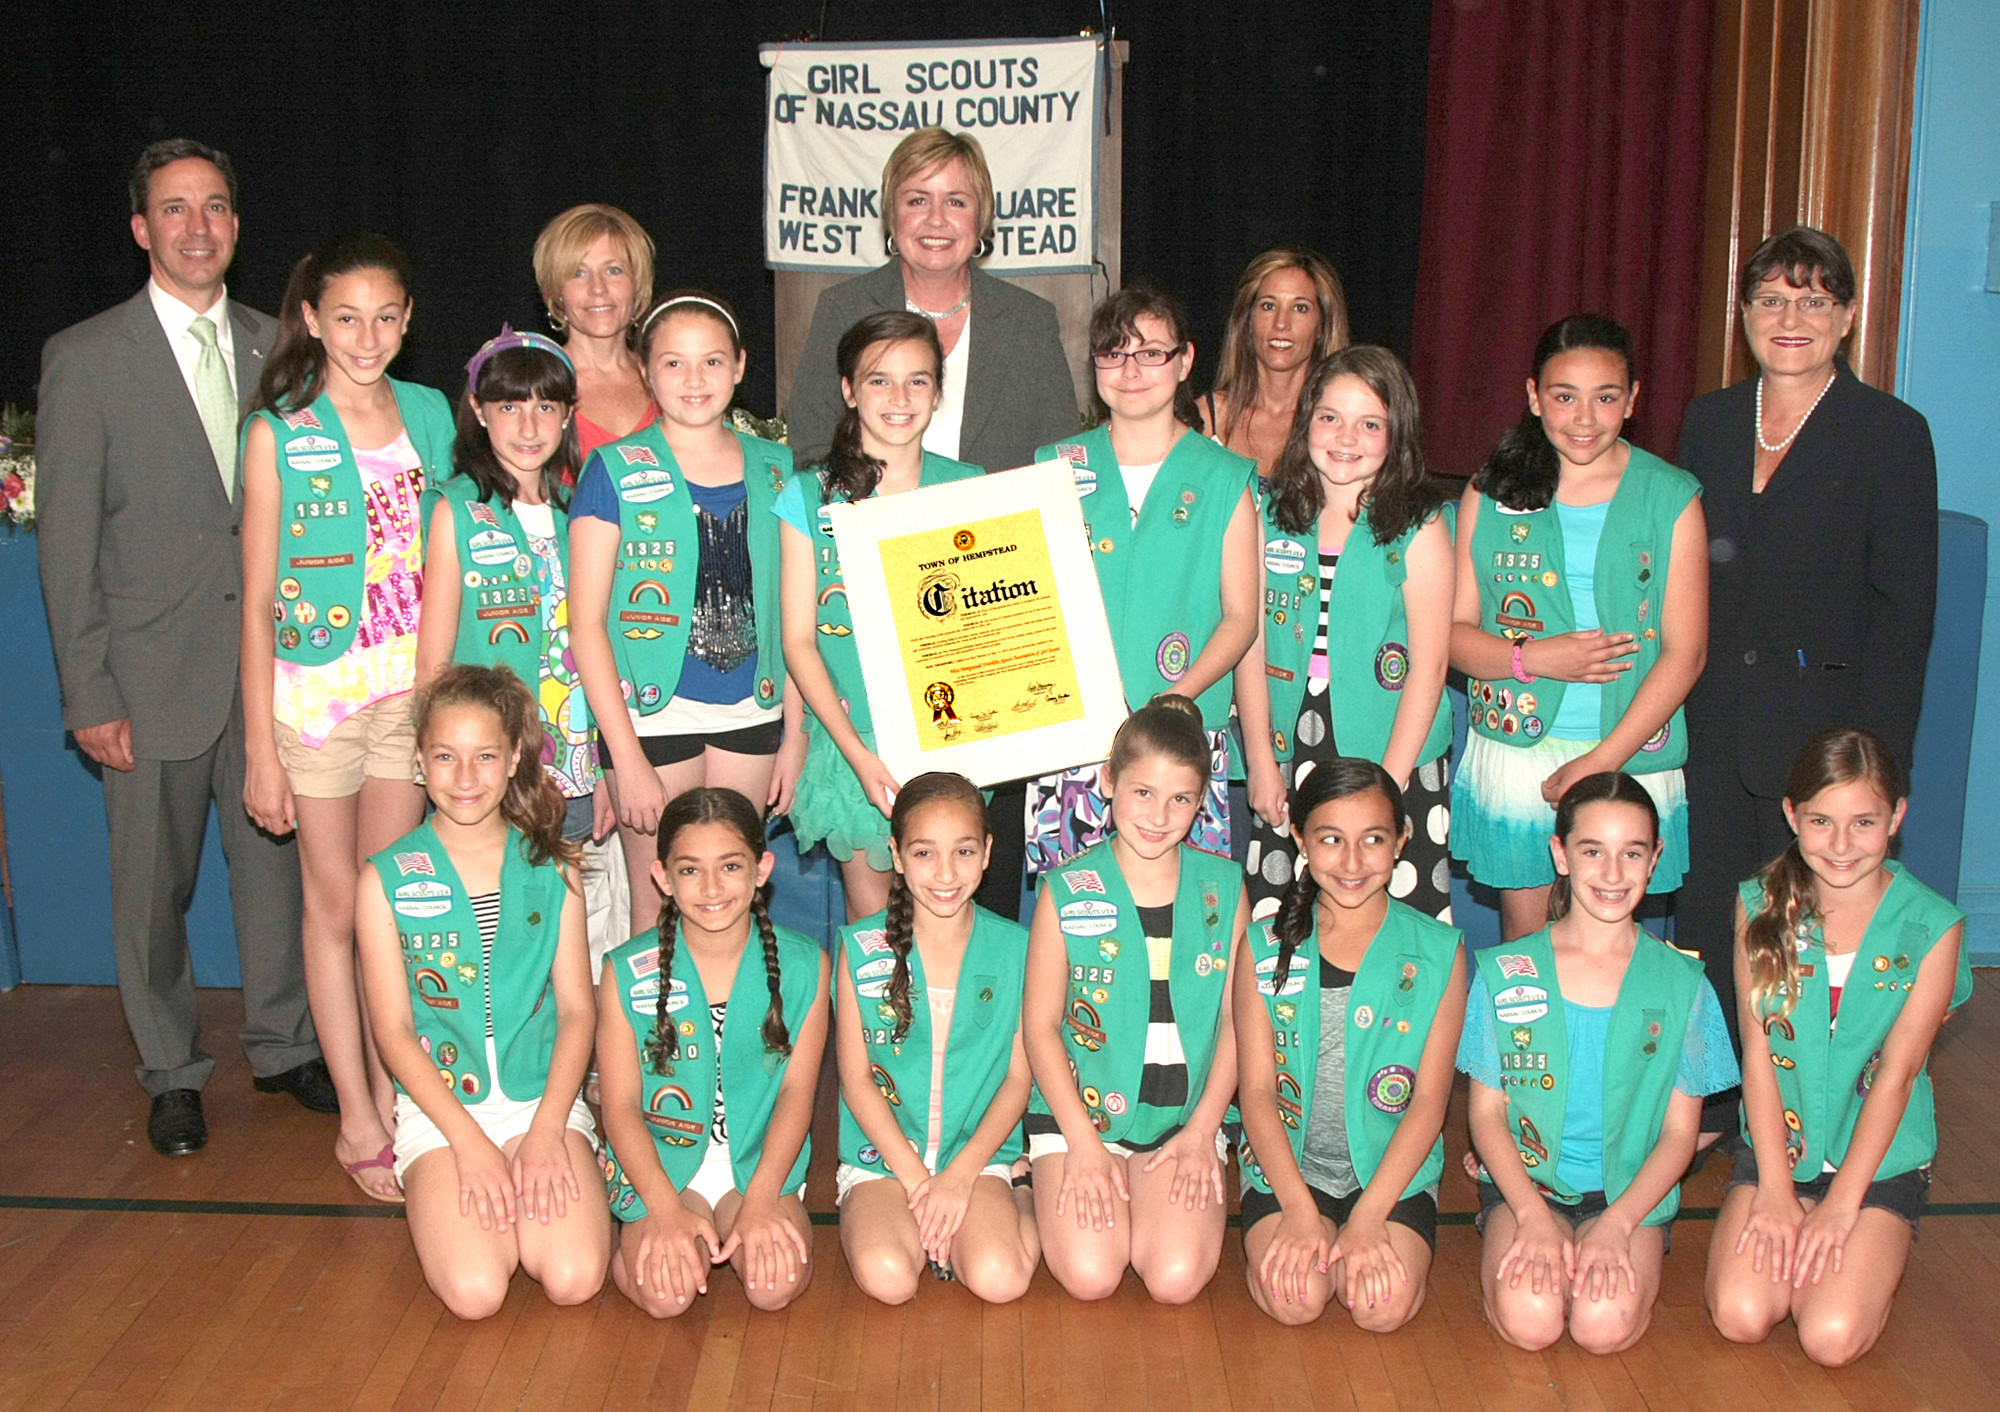 Troop 1325 received a bronze award and were recognized with Leader Peggy Asciutto by New York State Senator Jack Martins, left, Town Supervisor Kate Murray and Nassau County Clerk Maureen O'Connell.